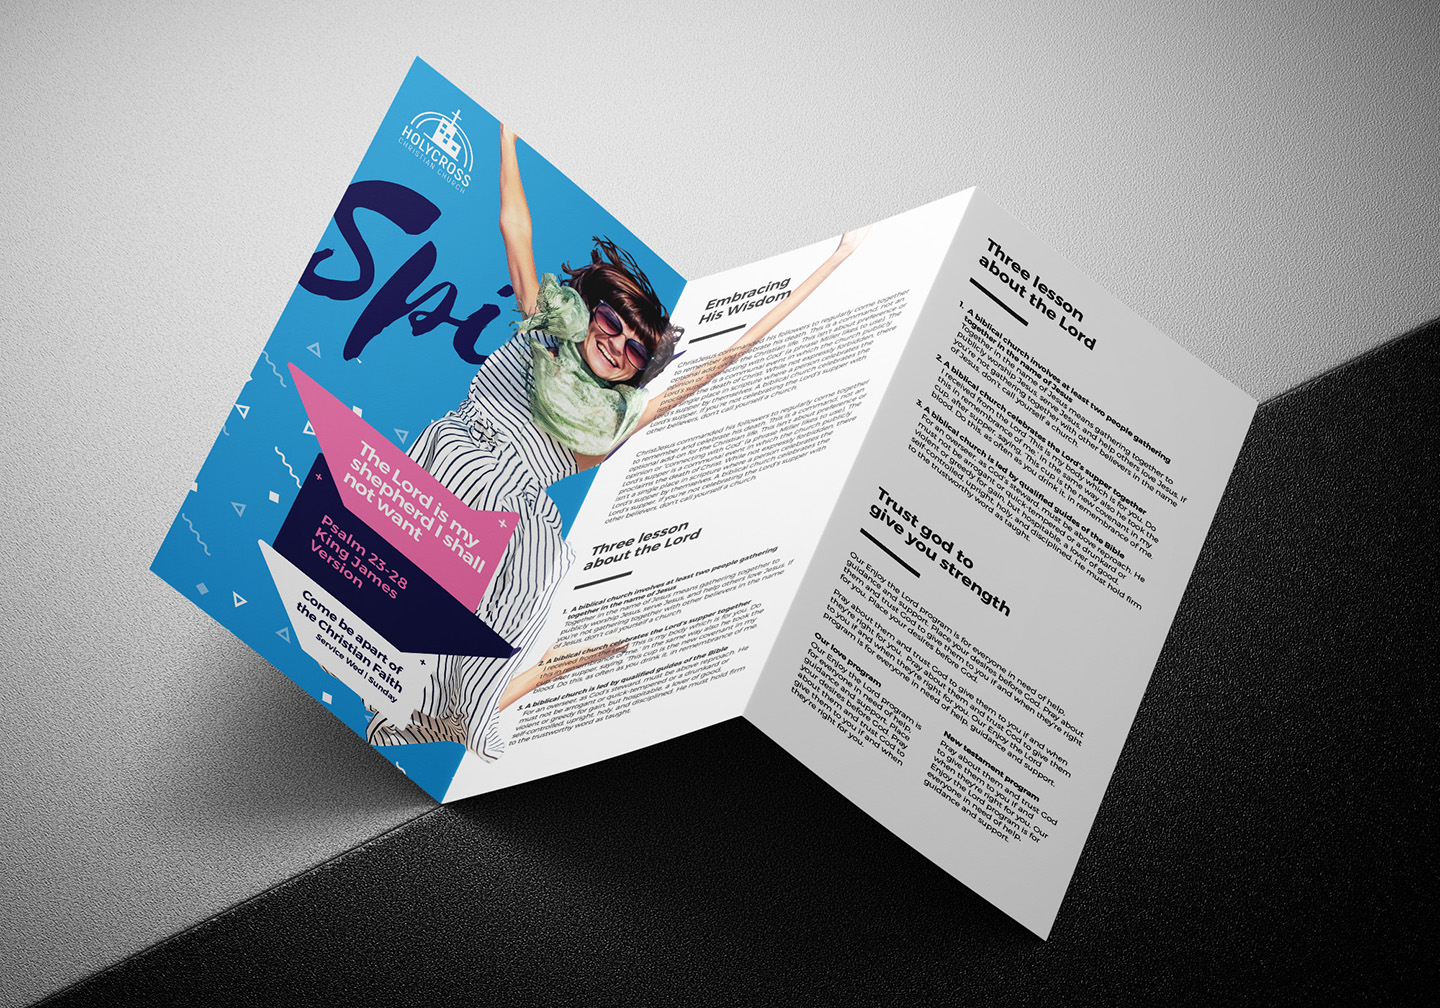 Easter Service Tri-Fold Brochure Template example image 5